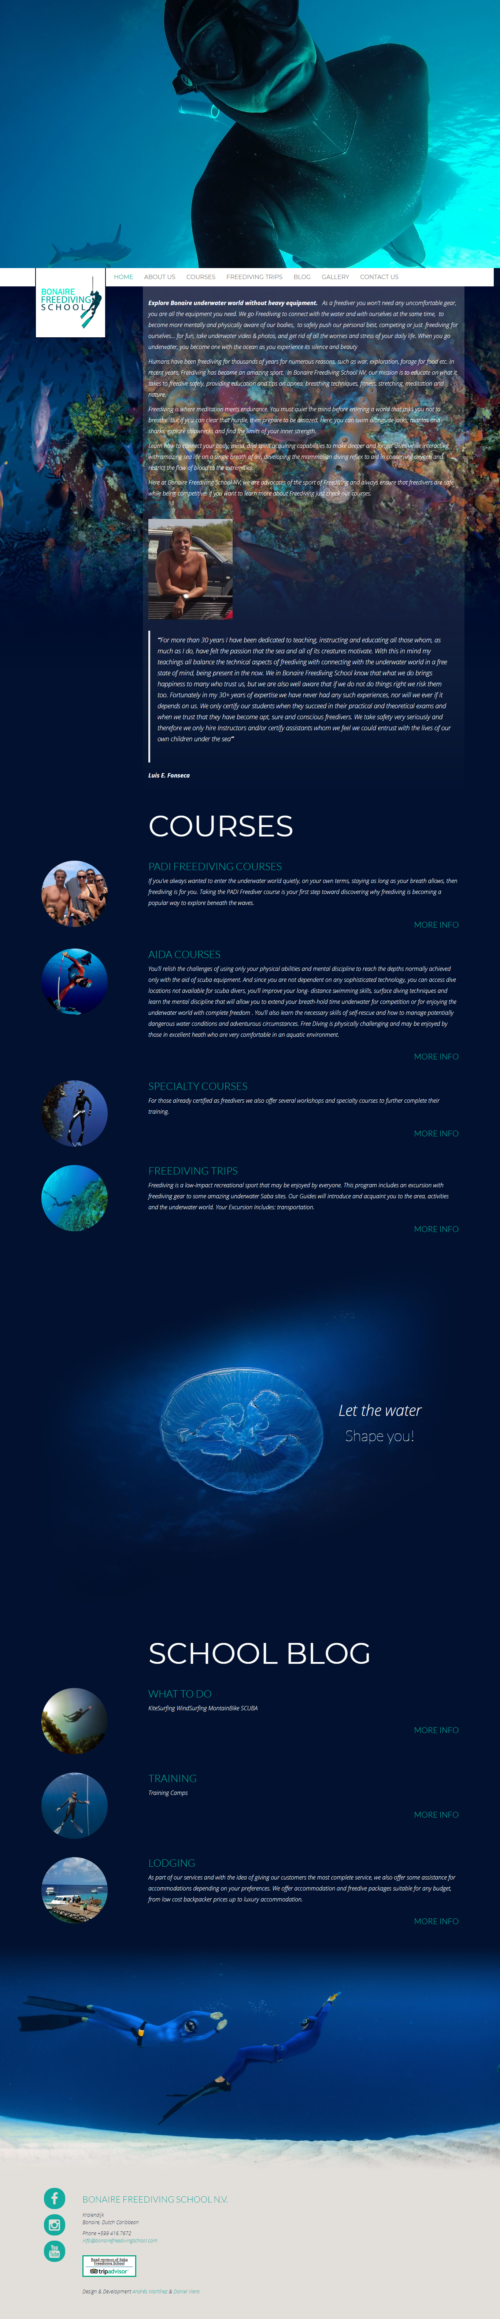 Bonaire Freediving School | Freediving school, originally located in Saba, and after the hurricane with new headquarters in Bonaire. Responsive website developed for WordPress with bootstrap and infinite scroll.